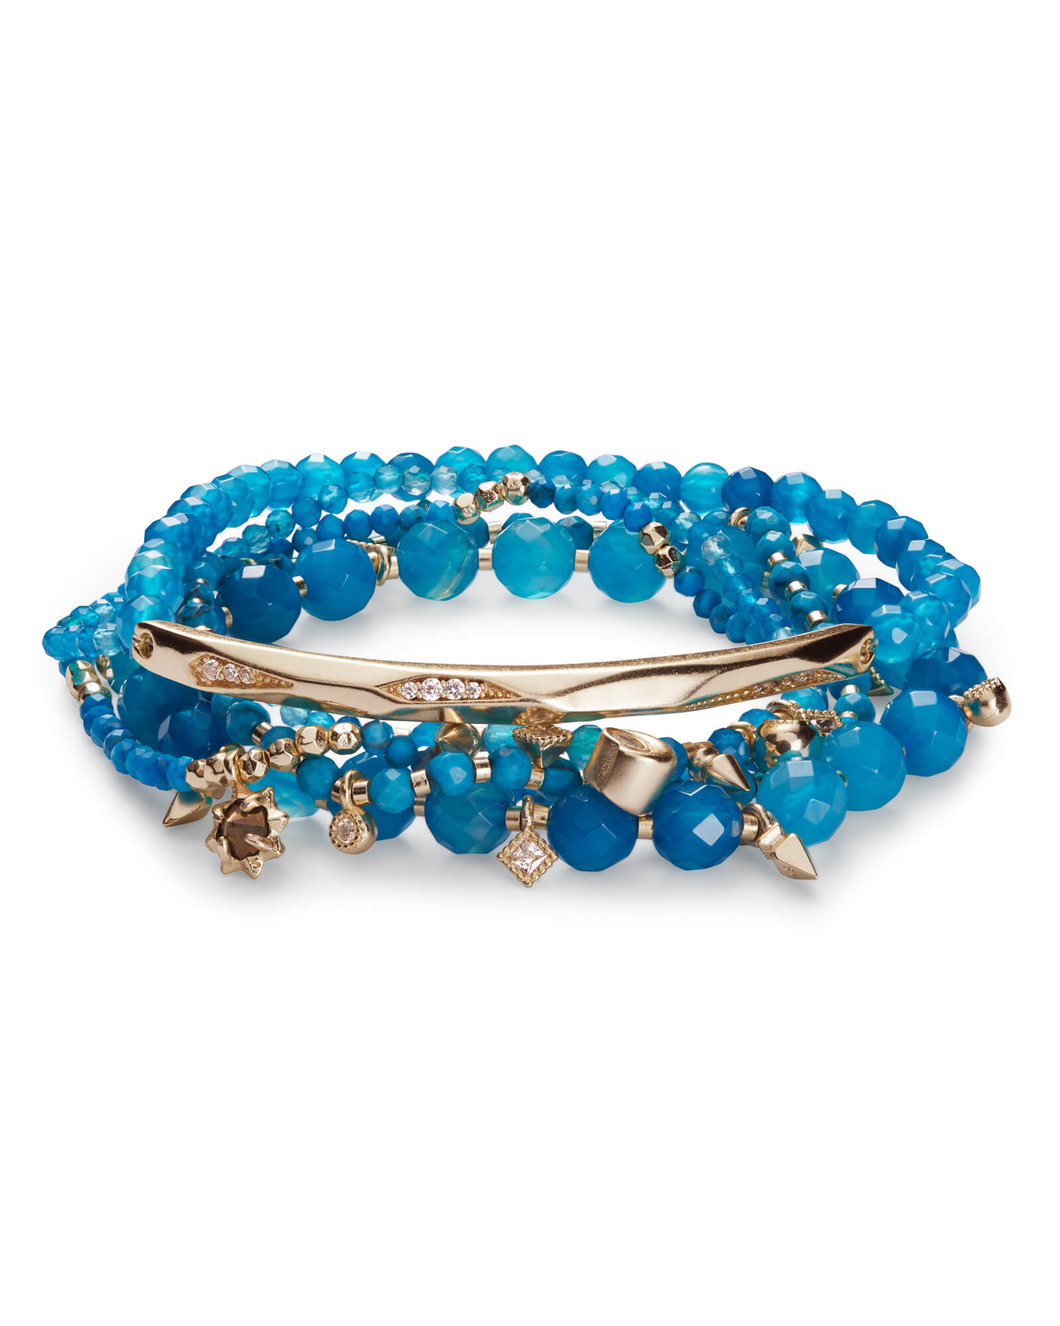 SALE-Supak Gold Beaded Bracelet Set In Veined Turquoise